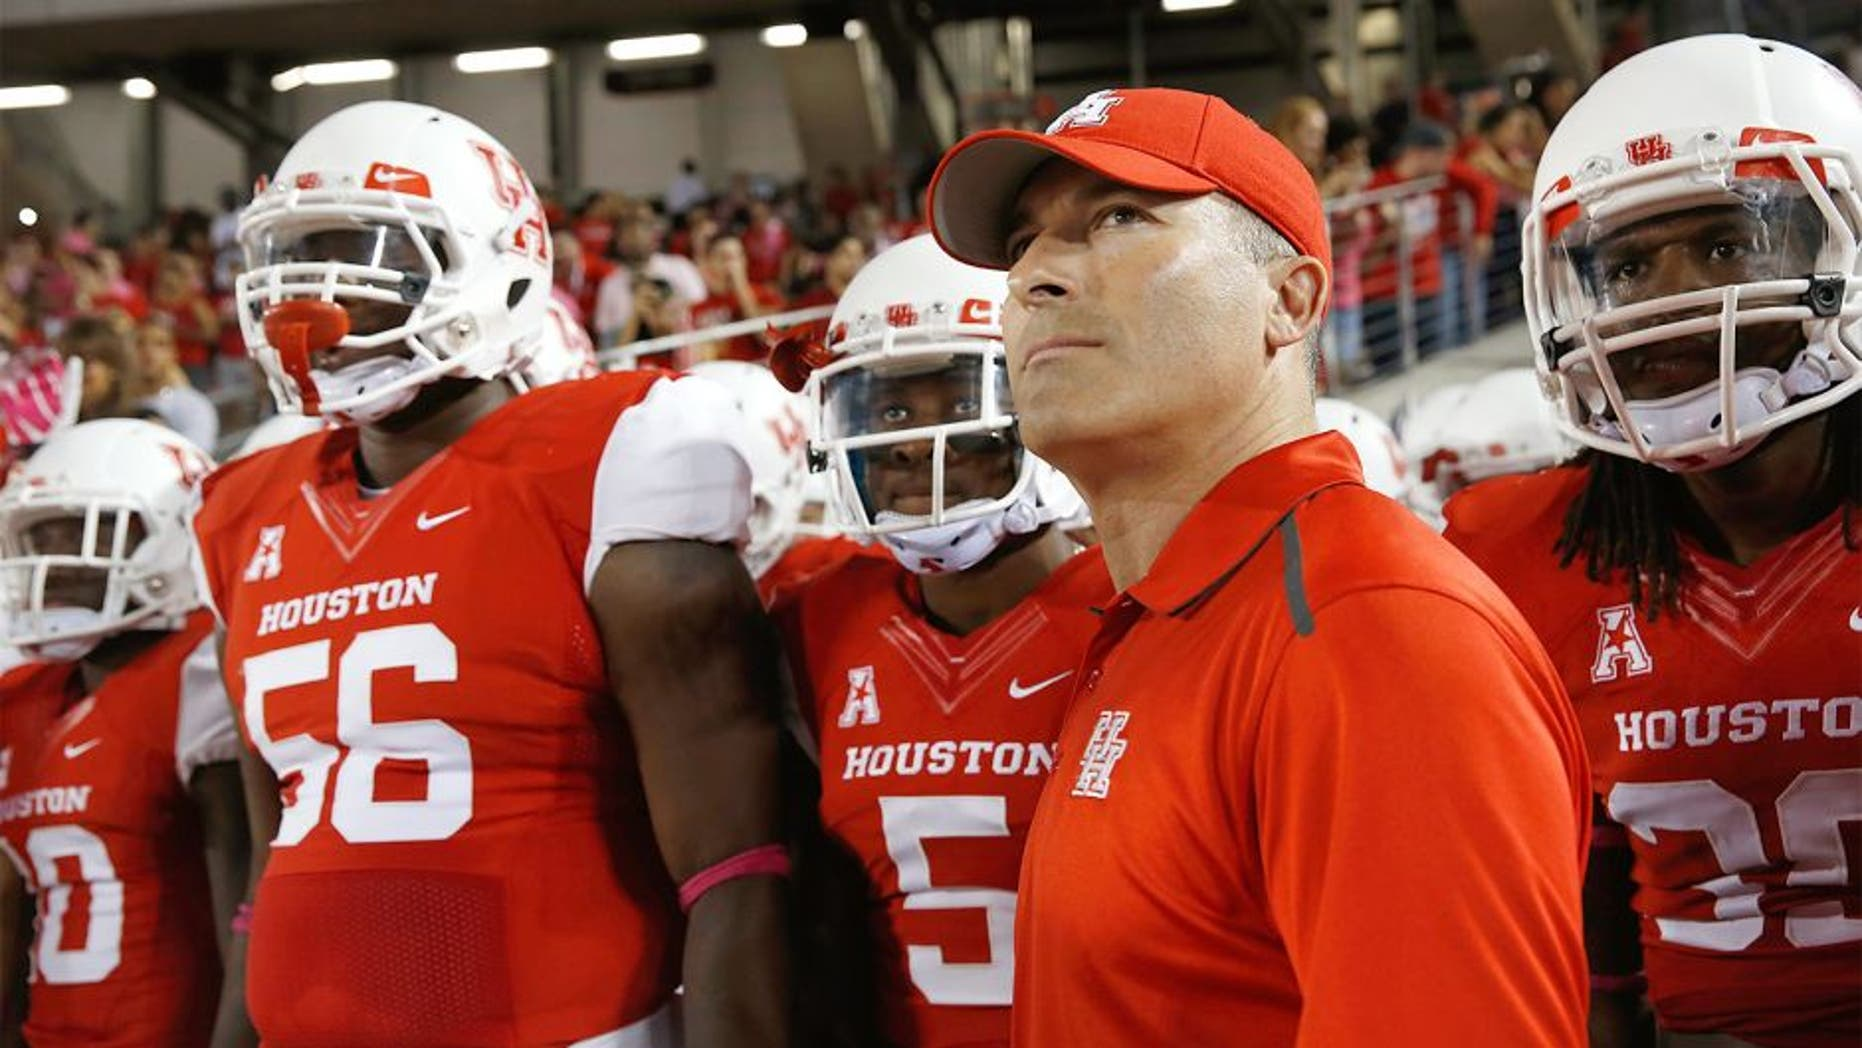 HOUSTON, TX - OCTOBER 17: Head coach of the Houston Cougars Tony Levine waits with his team prior to the start of their game against the Temple Owls at TDECU Stadium on October 17, 2014 in Houston, Texas. (Photo by Scott Halleran/Getty Images)